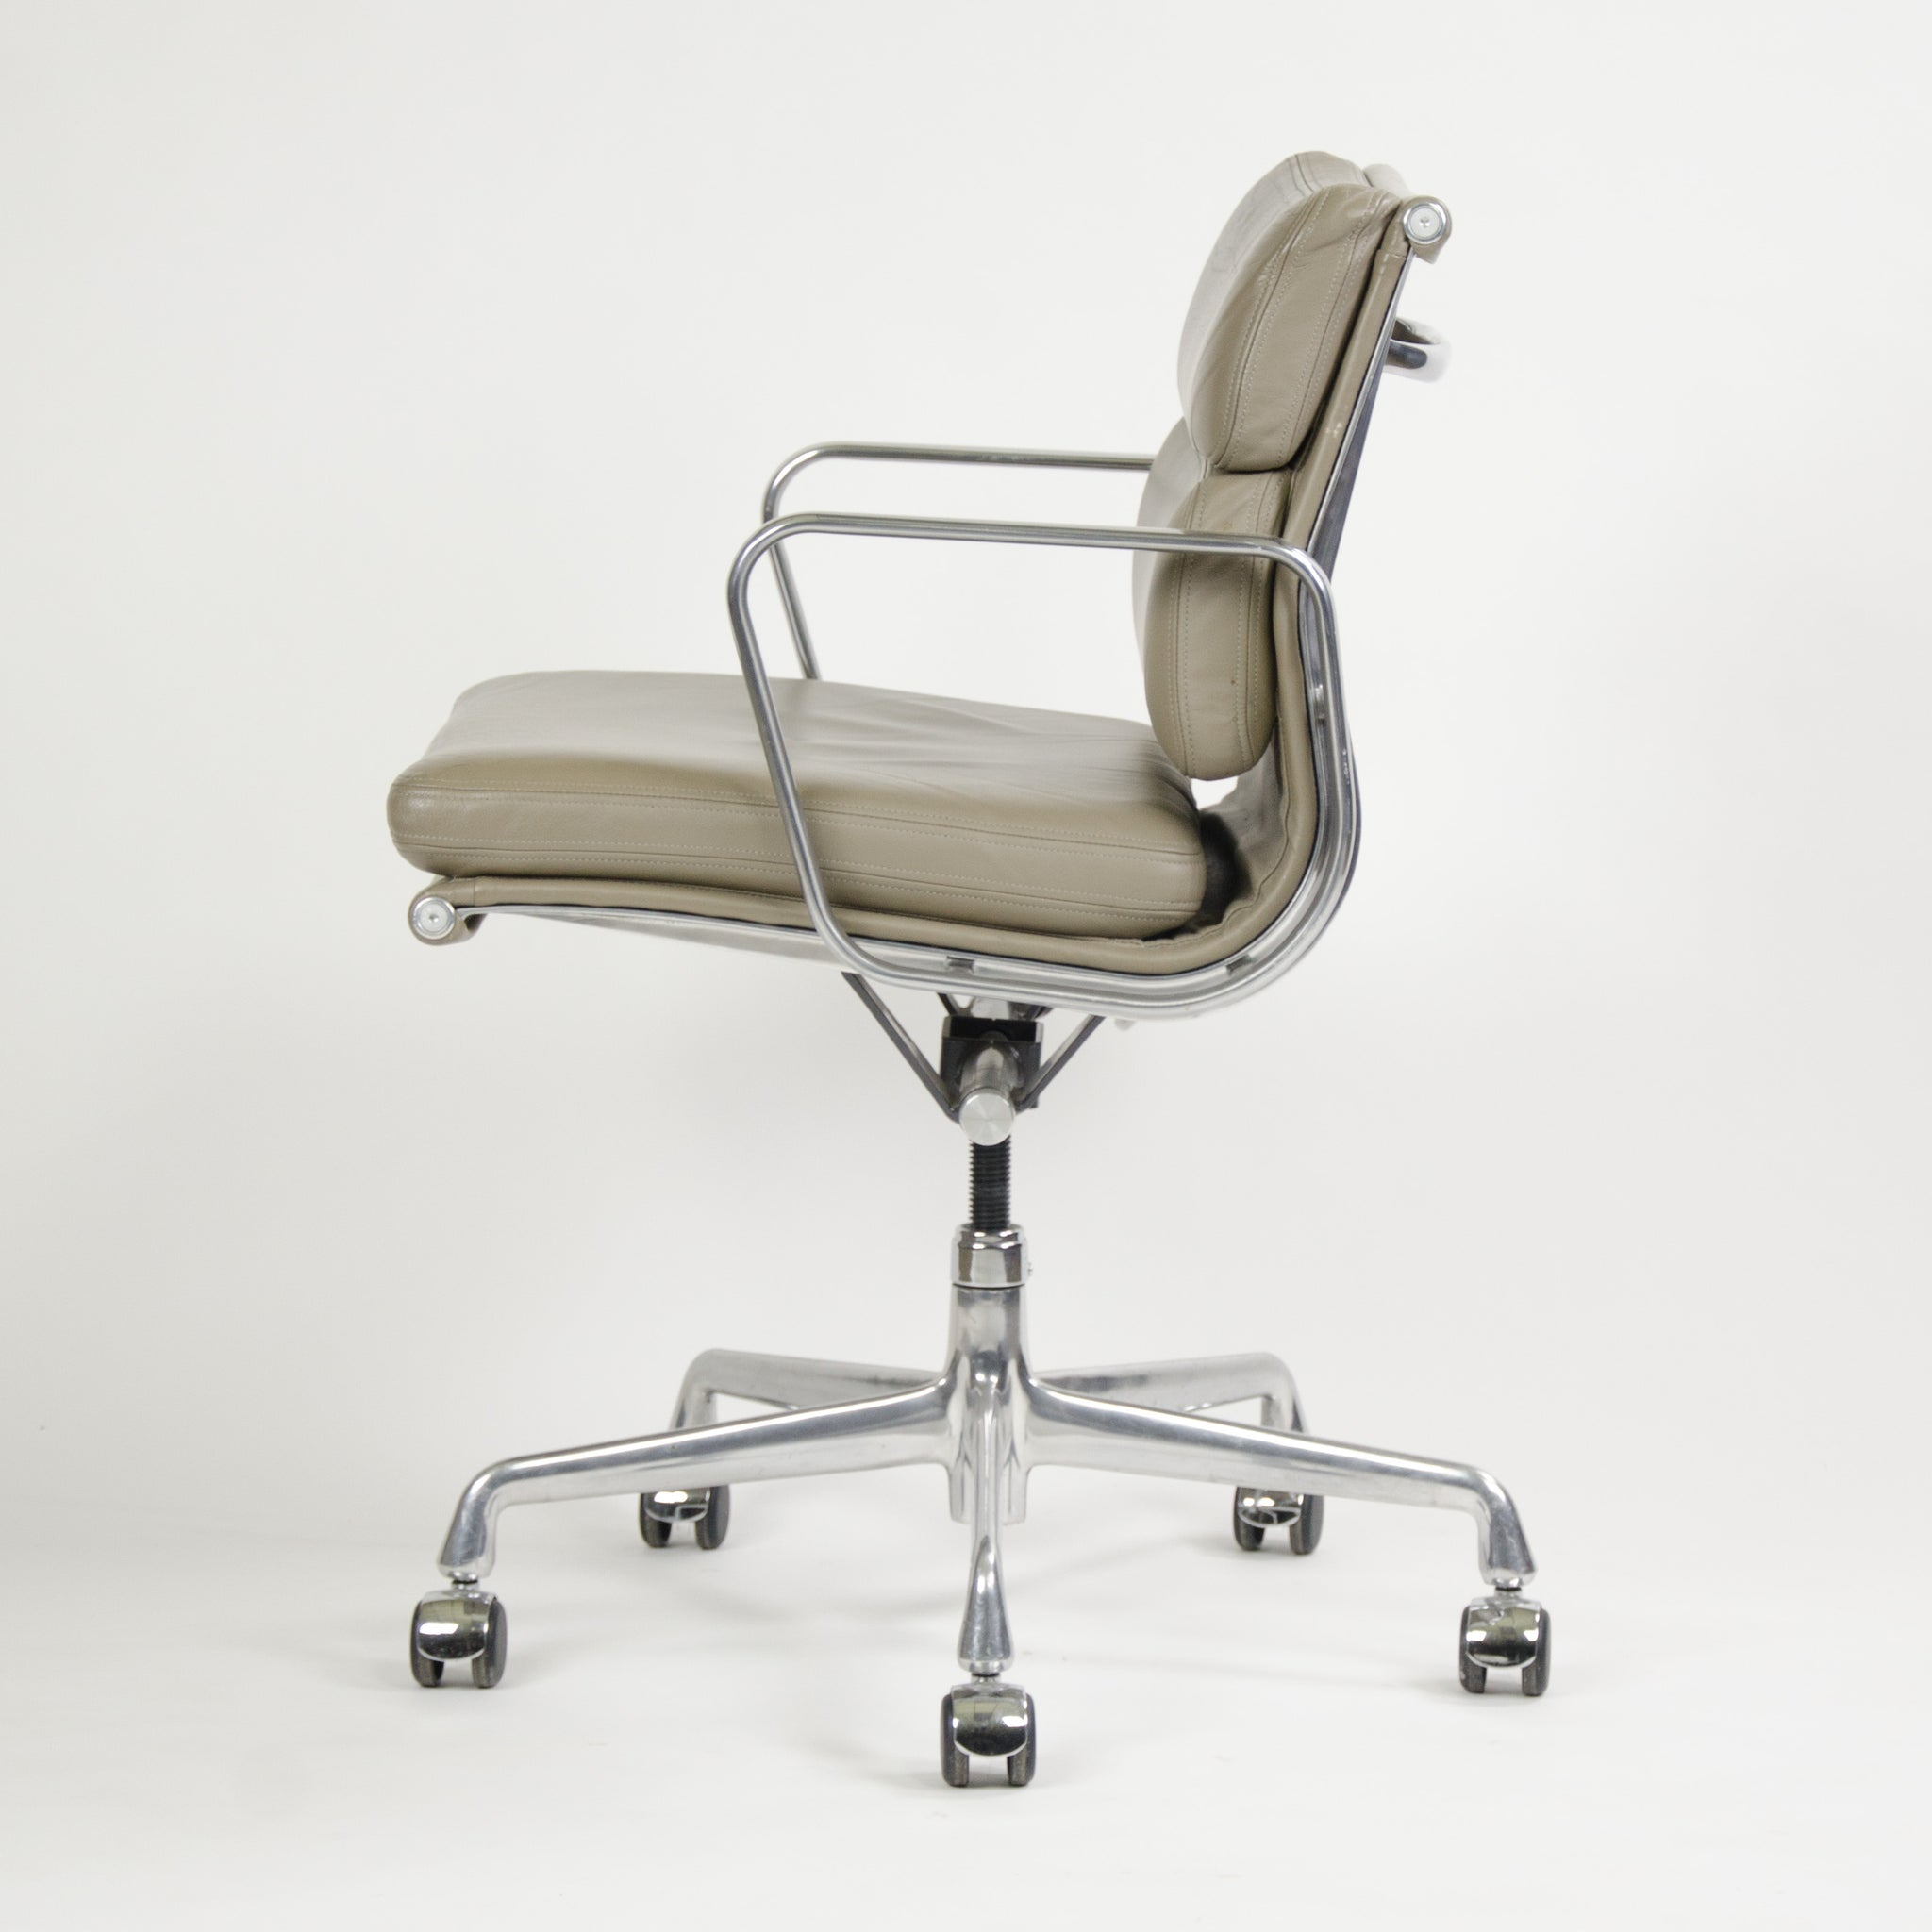 SOLD Herman Miller Eames Soft Pad Aluminum Group Chair Dark Tan Leather 2007